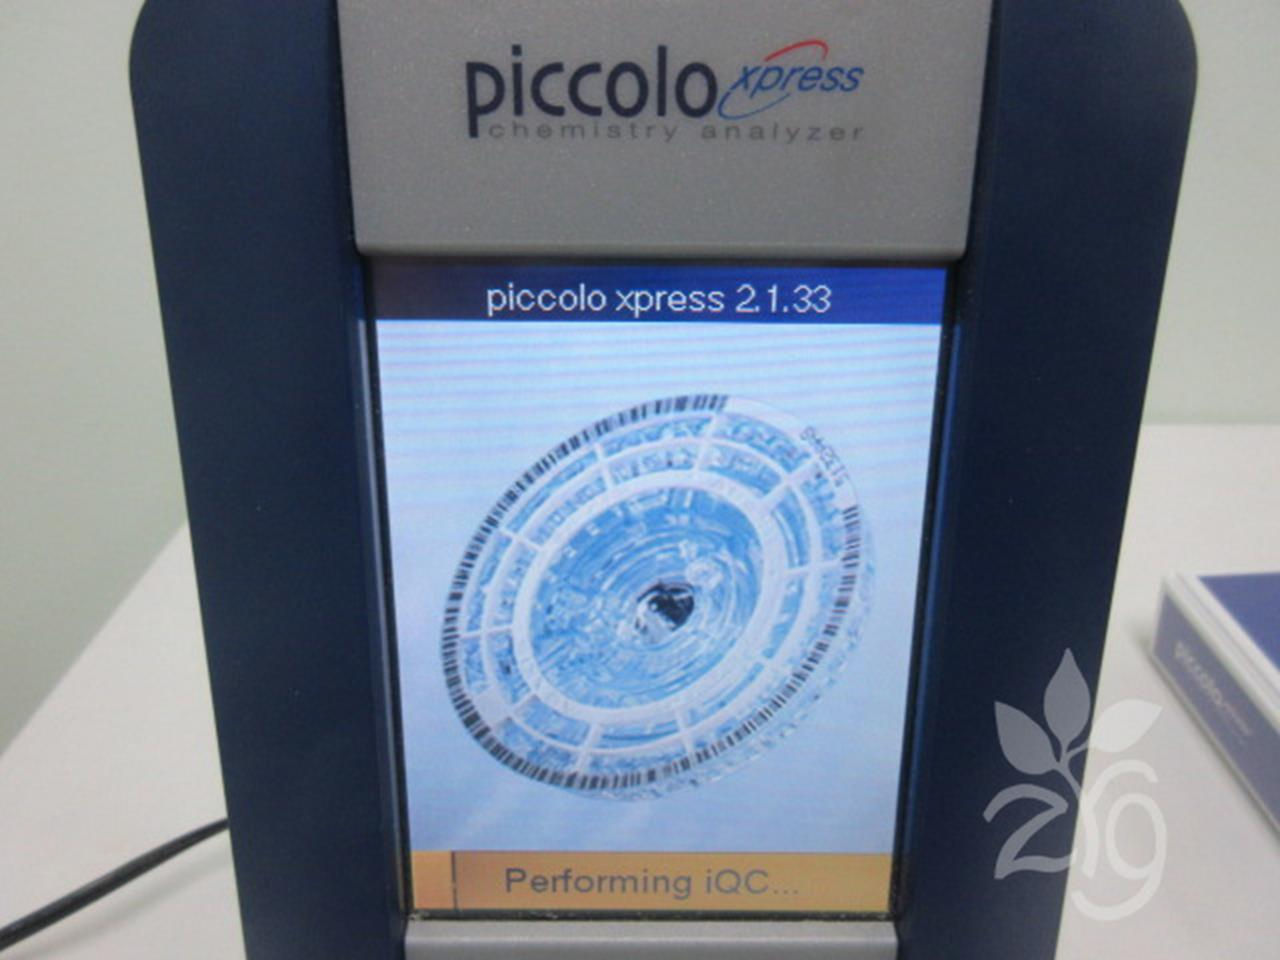 ABAXIS PICCOLO XPRESS CHEMISTRY ANALYZER ABAXIS PICCOLO